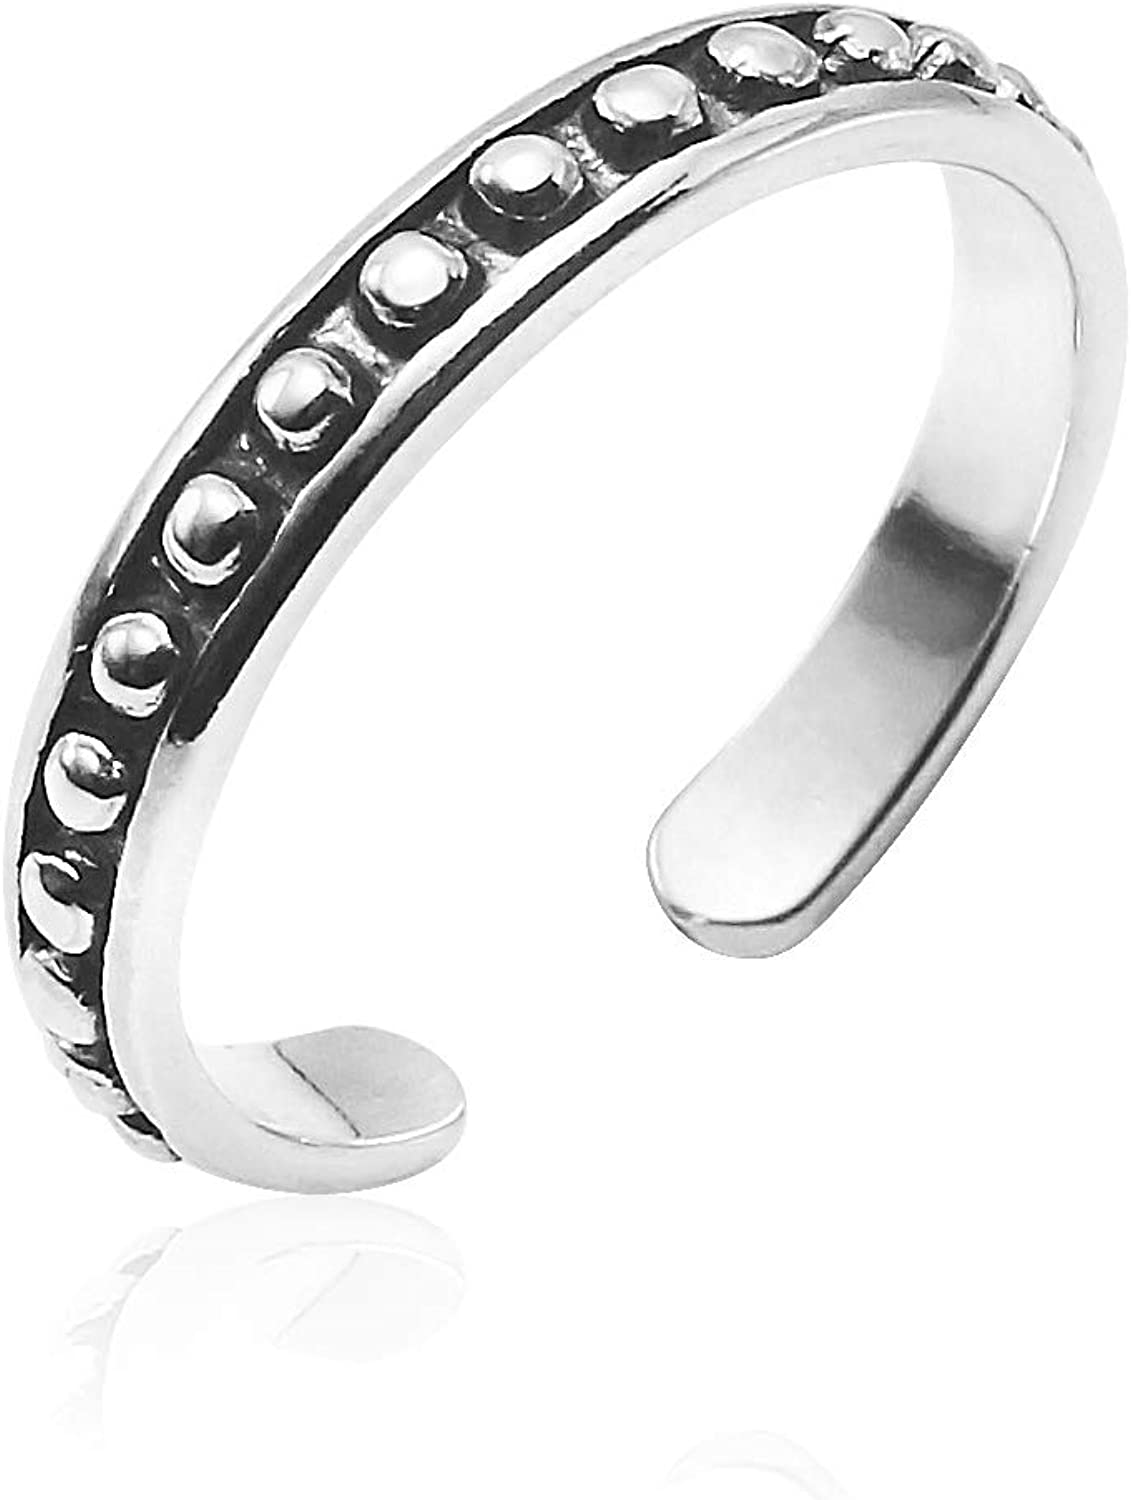 Dot Toe Ring Made from Genuine Solid 925 Sterling Silver Oxidized Finish Lightweight and Unique Design Big Apple Hoops